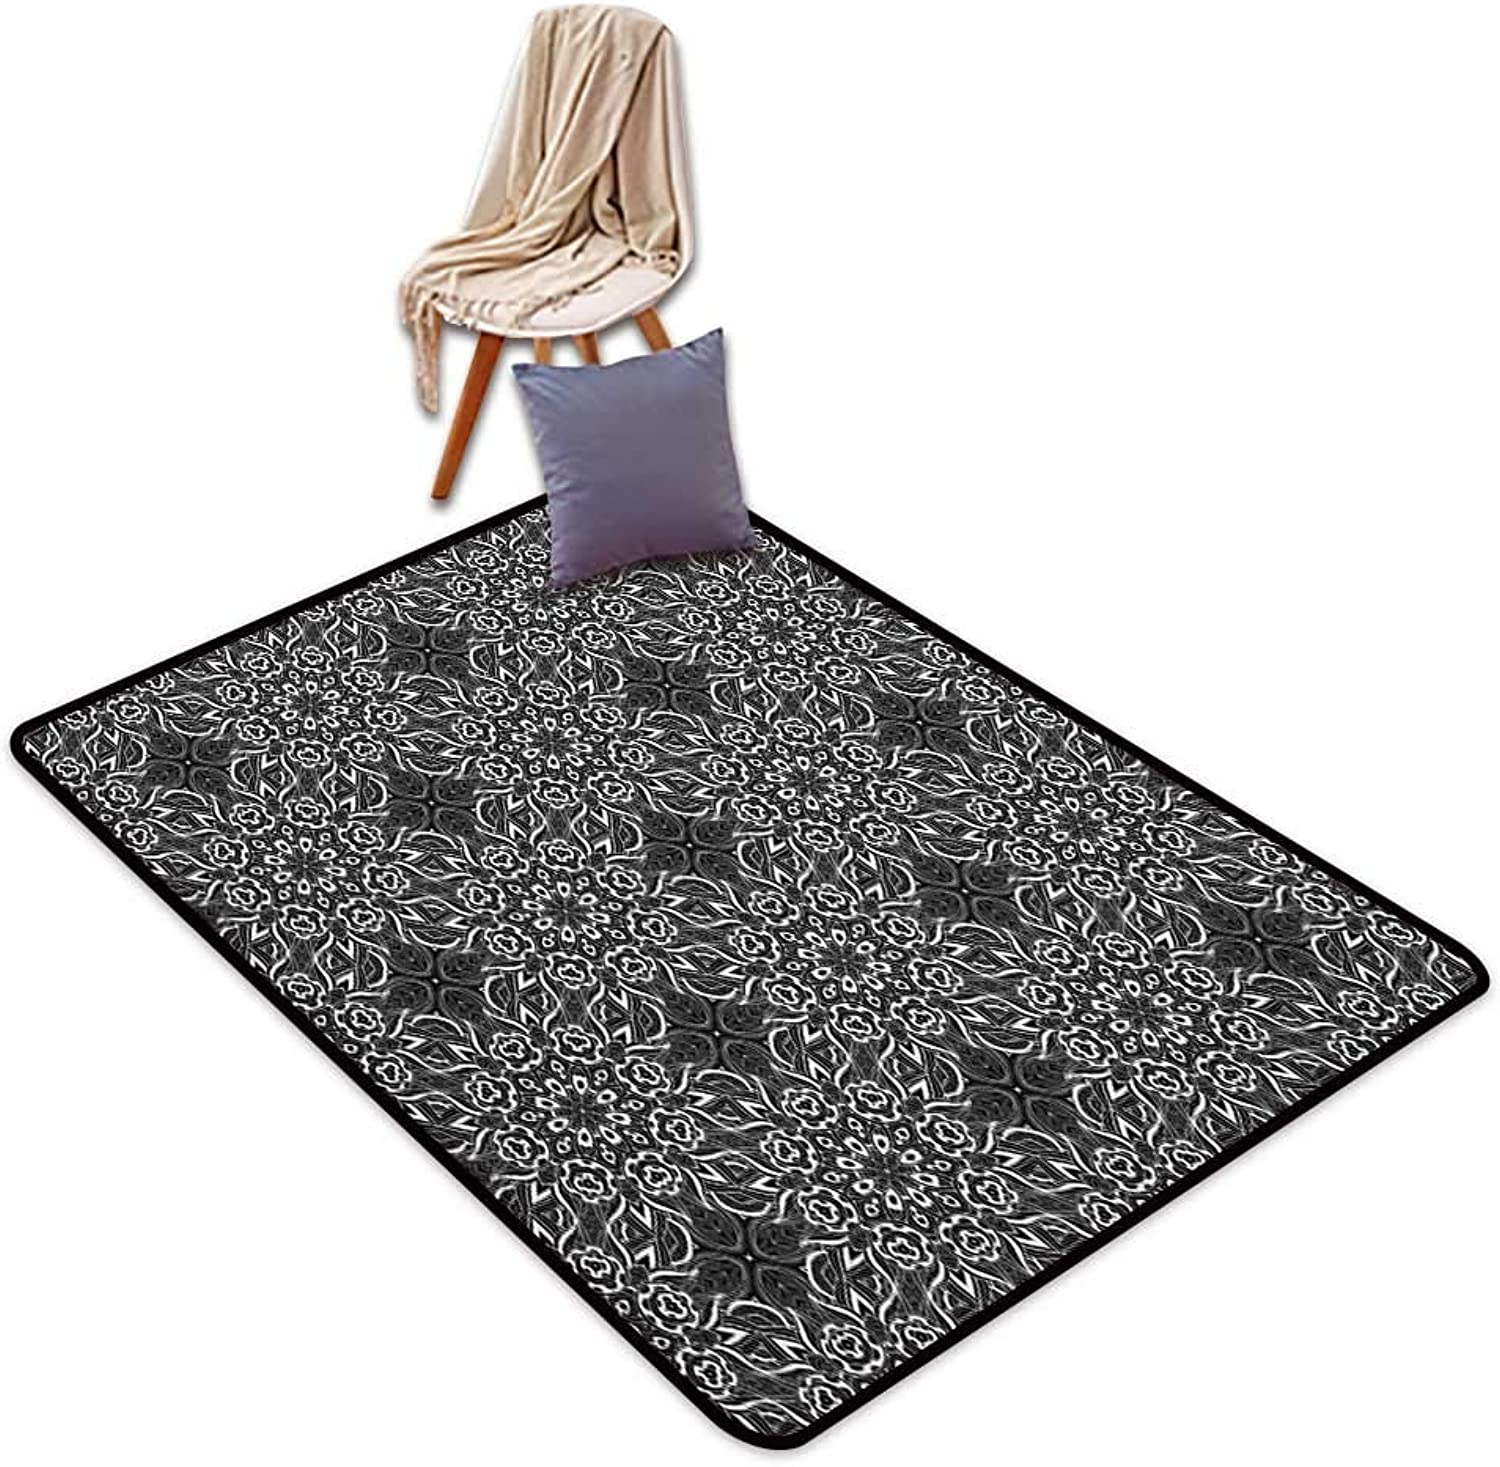 Non-Slip Carpet Black and White Abstract Monochrome Composition with Flowers and Foliage Leaves Pattern Door Rug Increase W4'xL6'